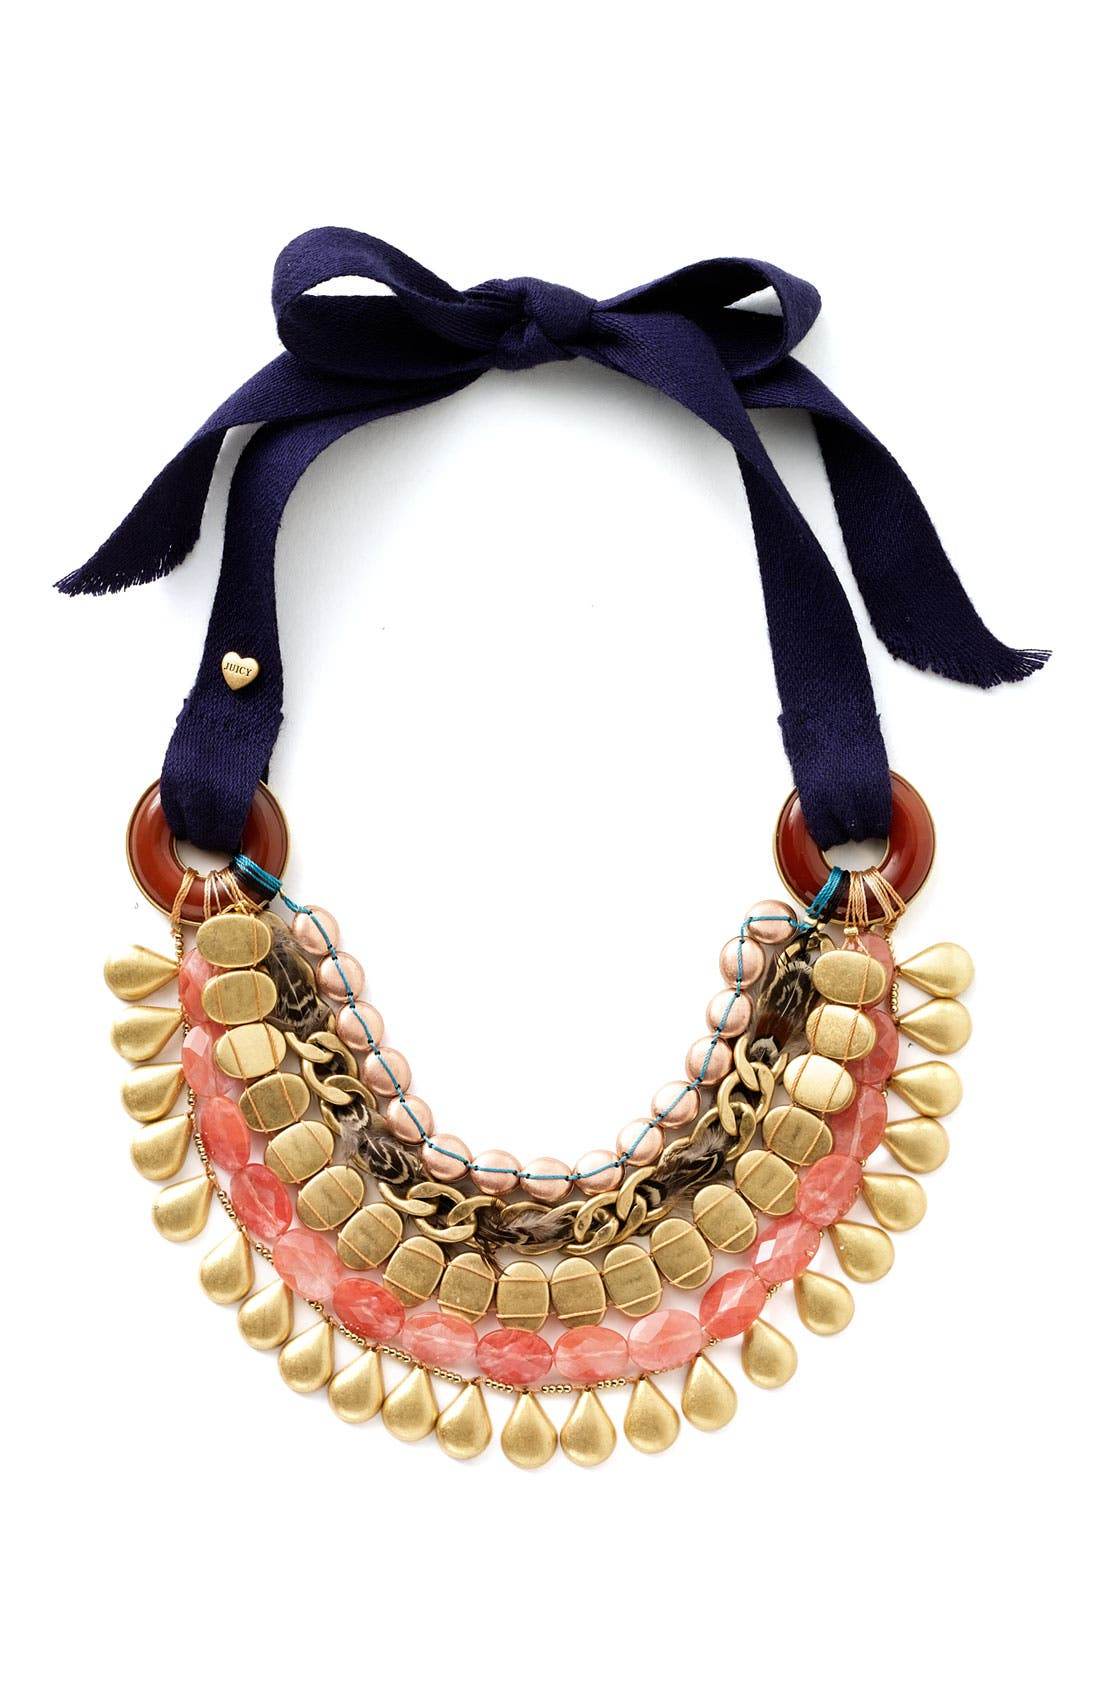 Alternate Image 1 Selected - Juicy Couture 'Modern Nostalgia' Beaded Bib Necklace